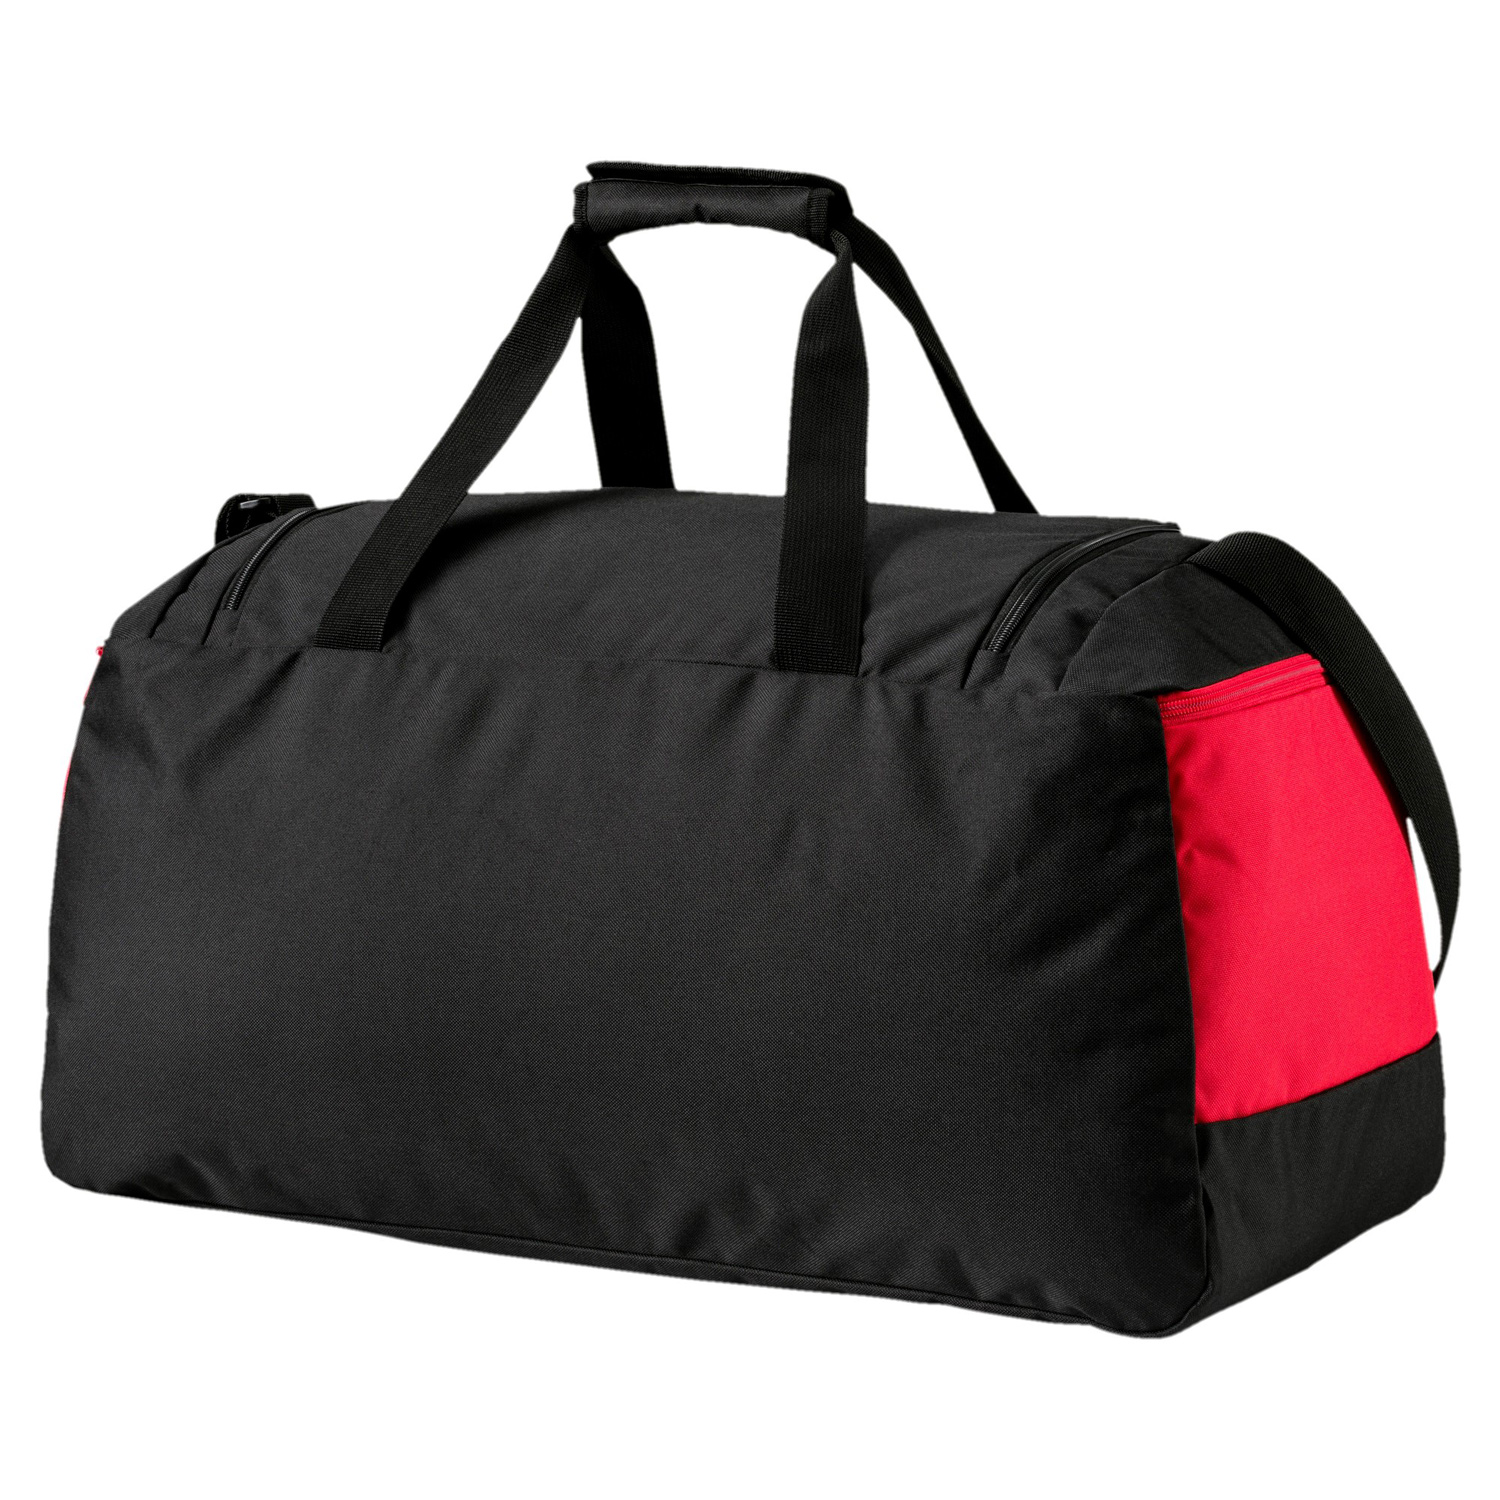 67c183844b7b Puma Pro Training II Medium Bag - Sporttasche Bag - 074892-02 rot schwarz